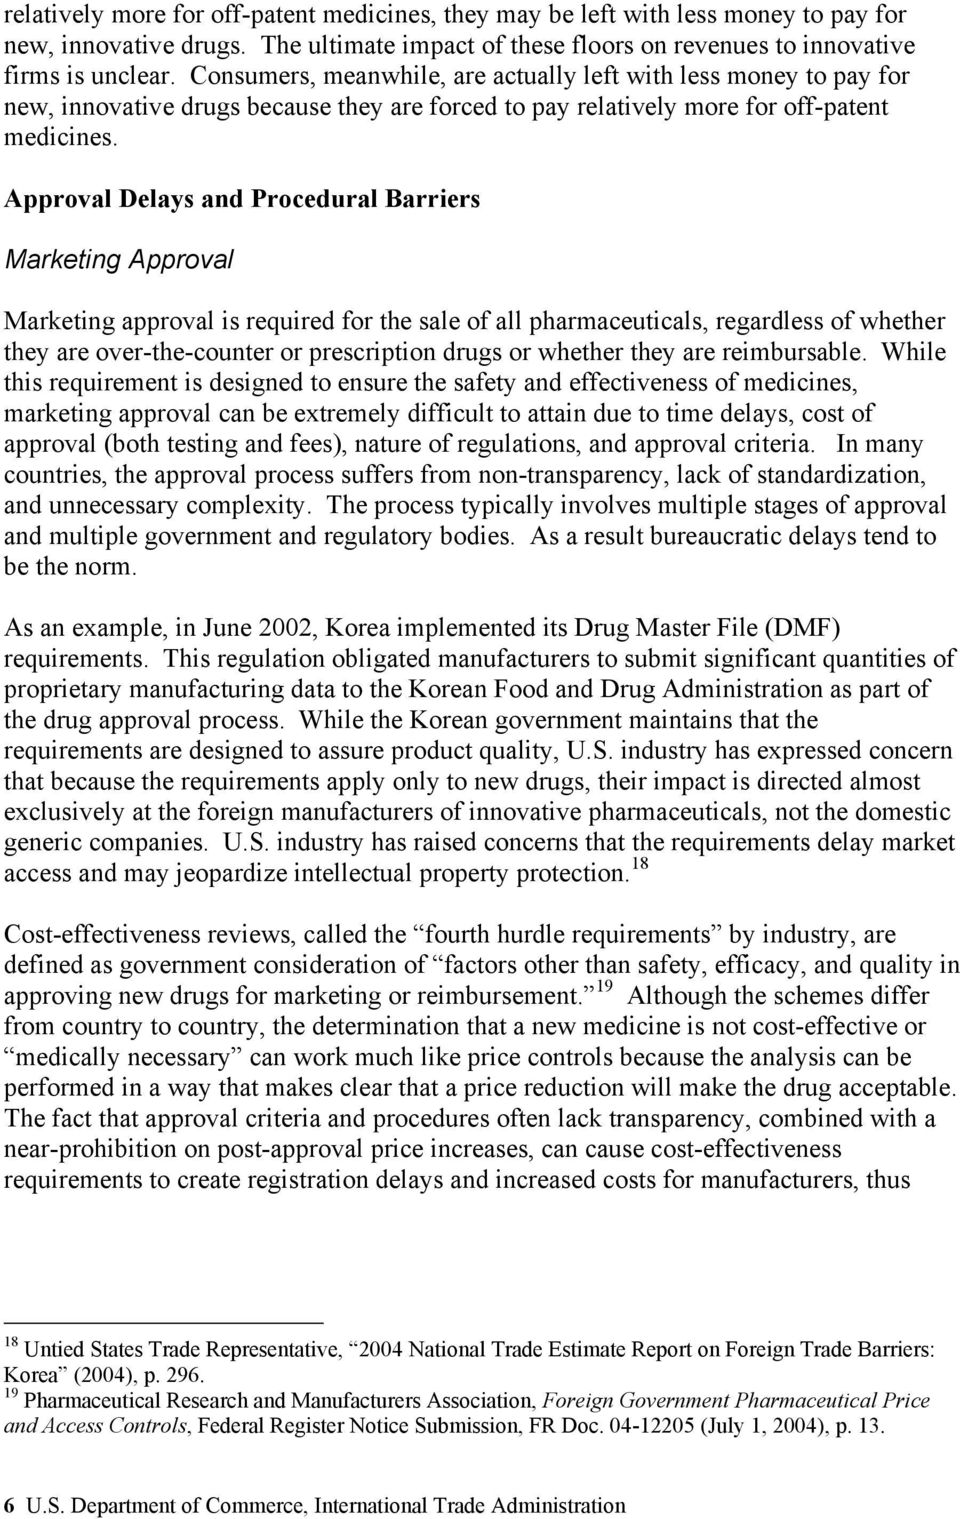 Approval Delays and Procedural Barriers Marketing Approval Marketing approval is required for the sale of all pharmaceuticals, regardless of whether they are over-the-counter or prescription drugs or